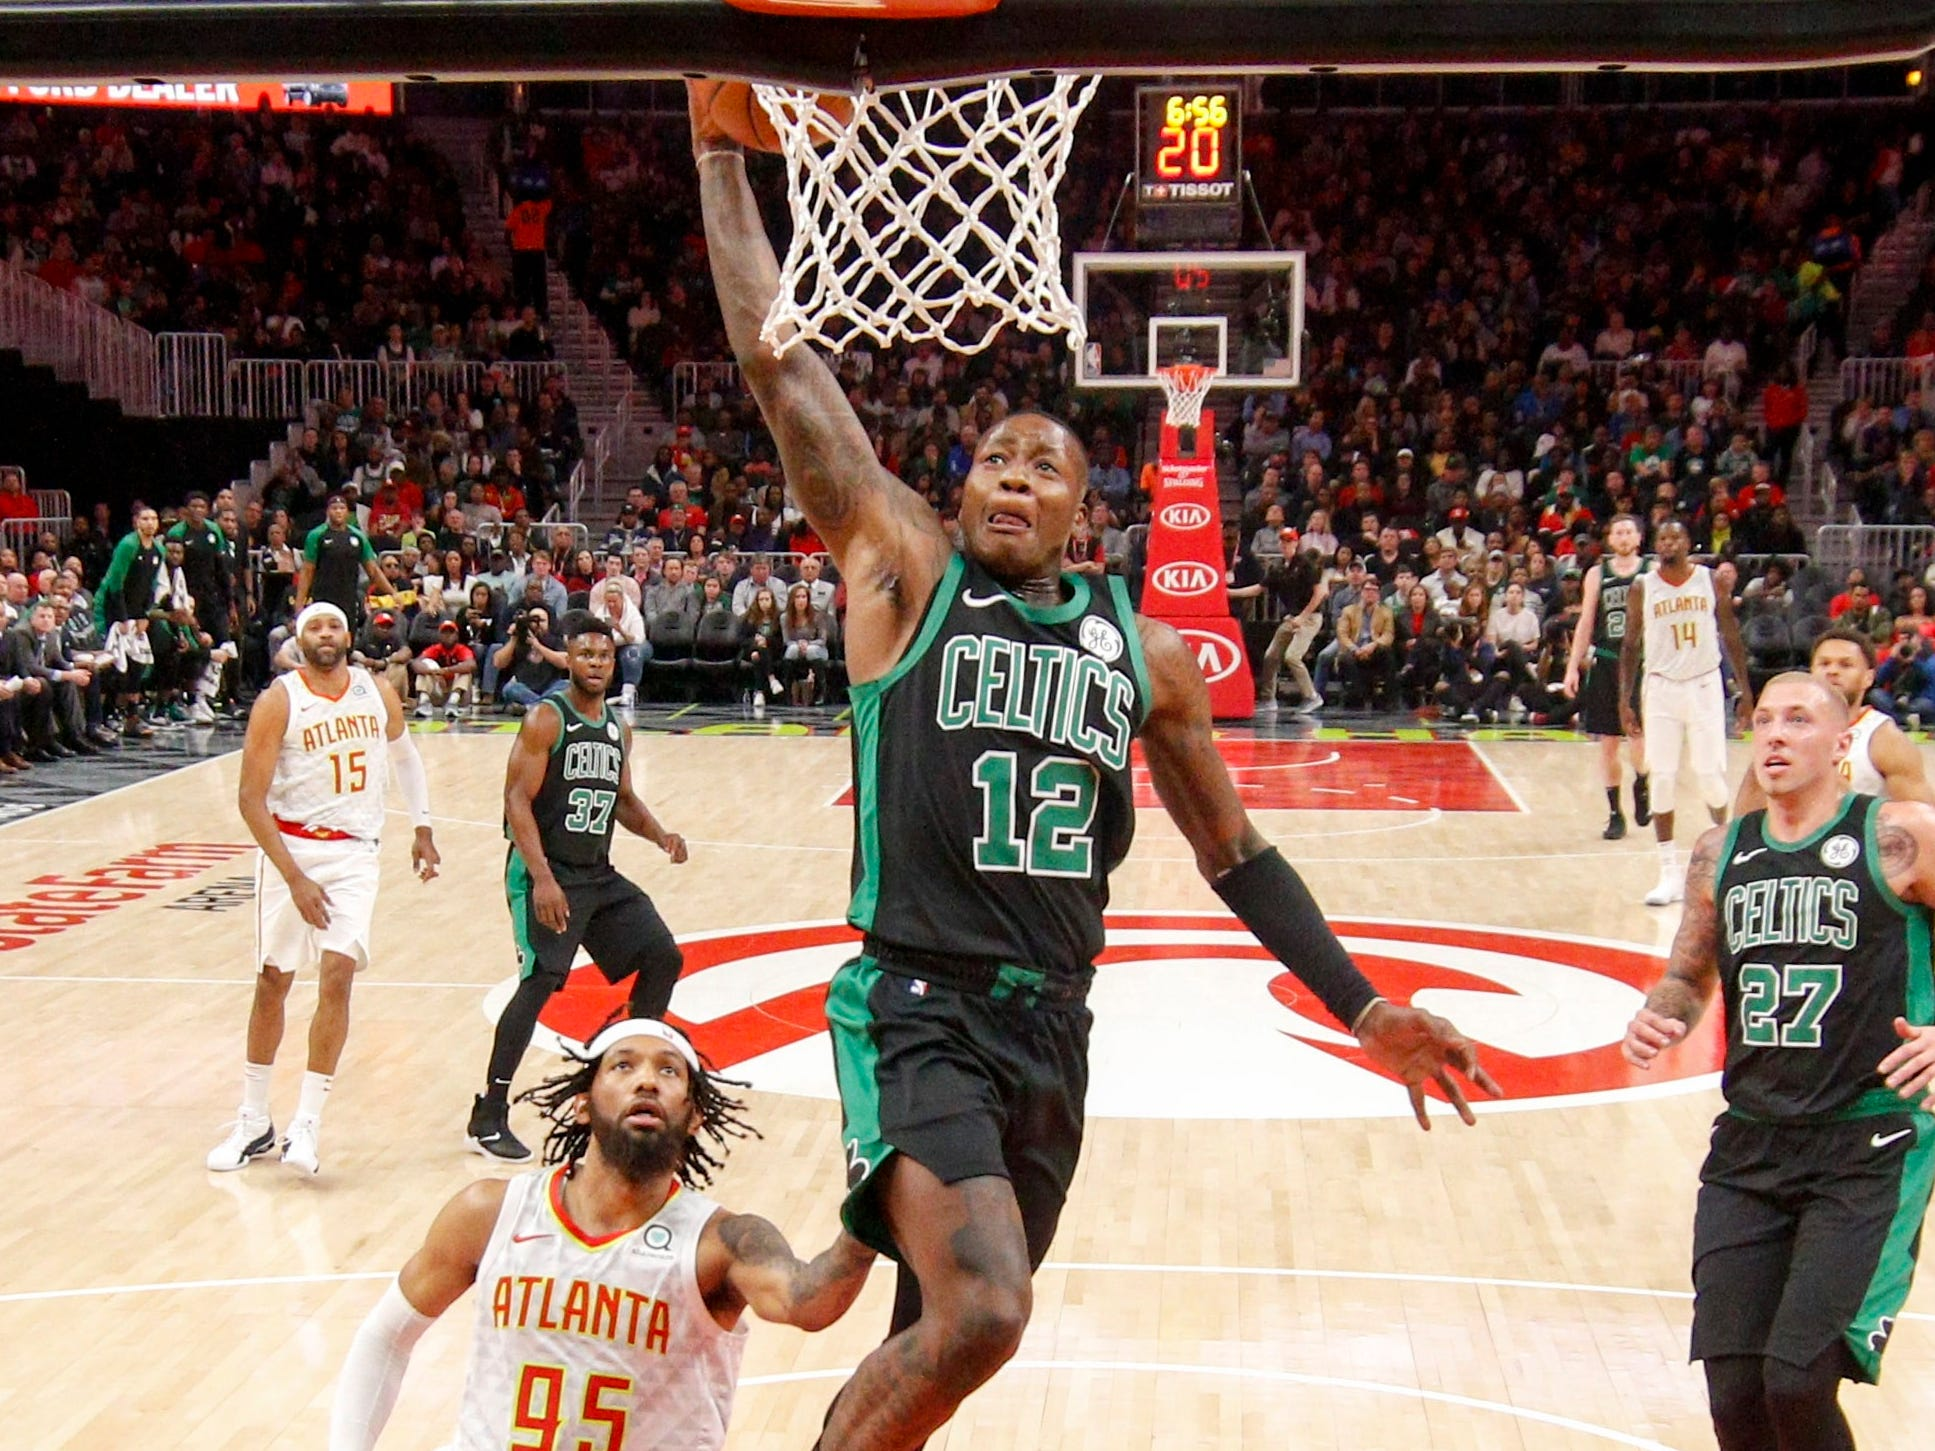 Nov. 23: Celtics guard Terry Rozier finishes the break with a one-handed flush during the first half against the Hawks in Atlanta.